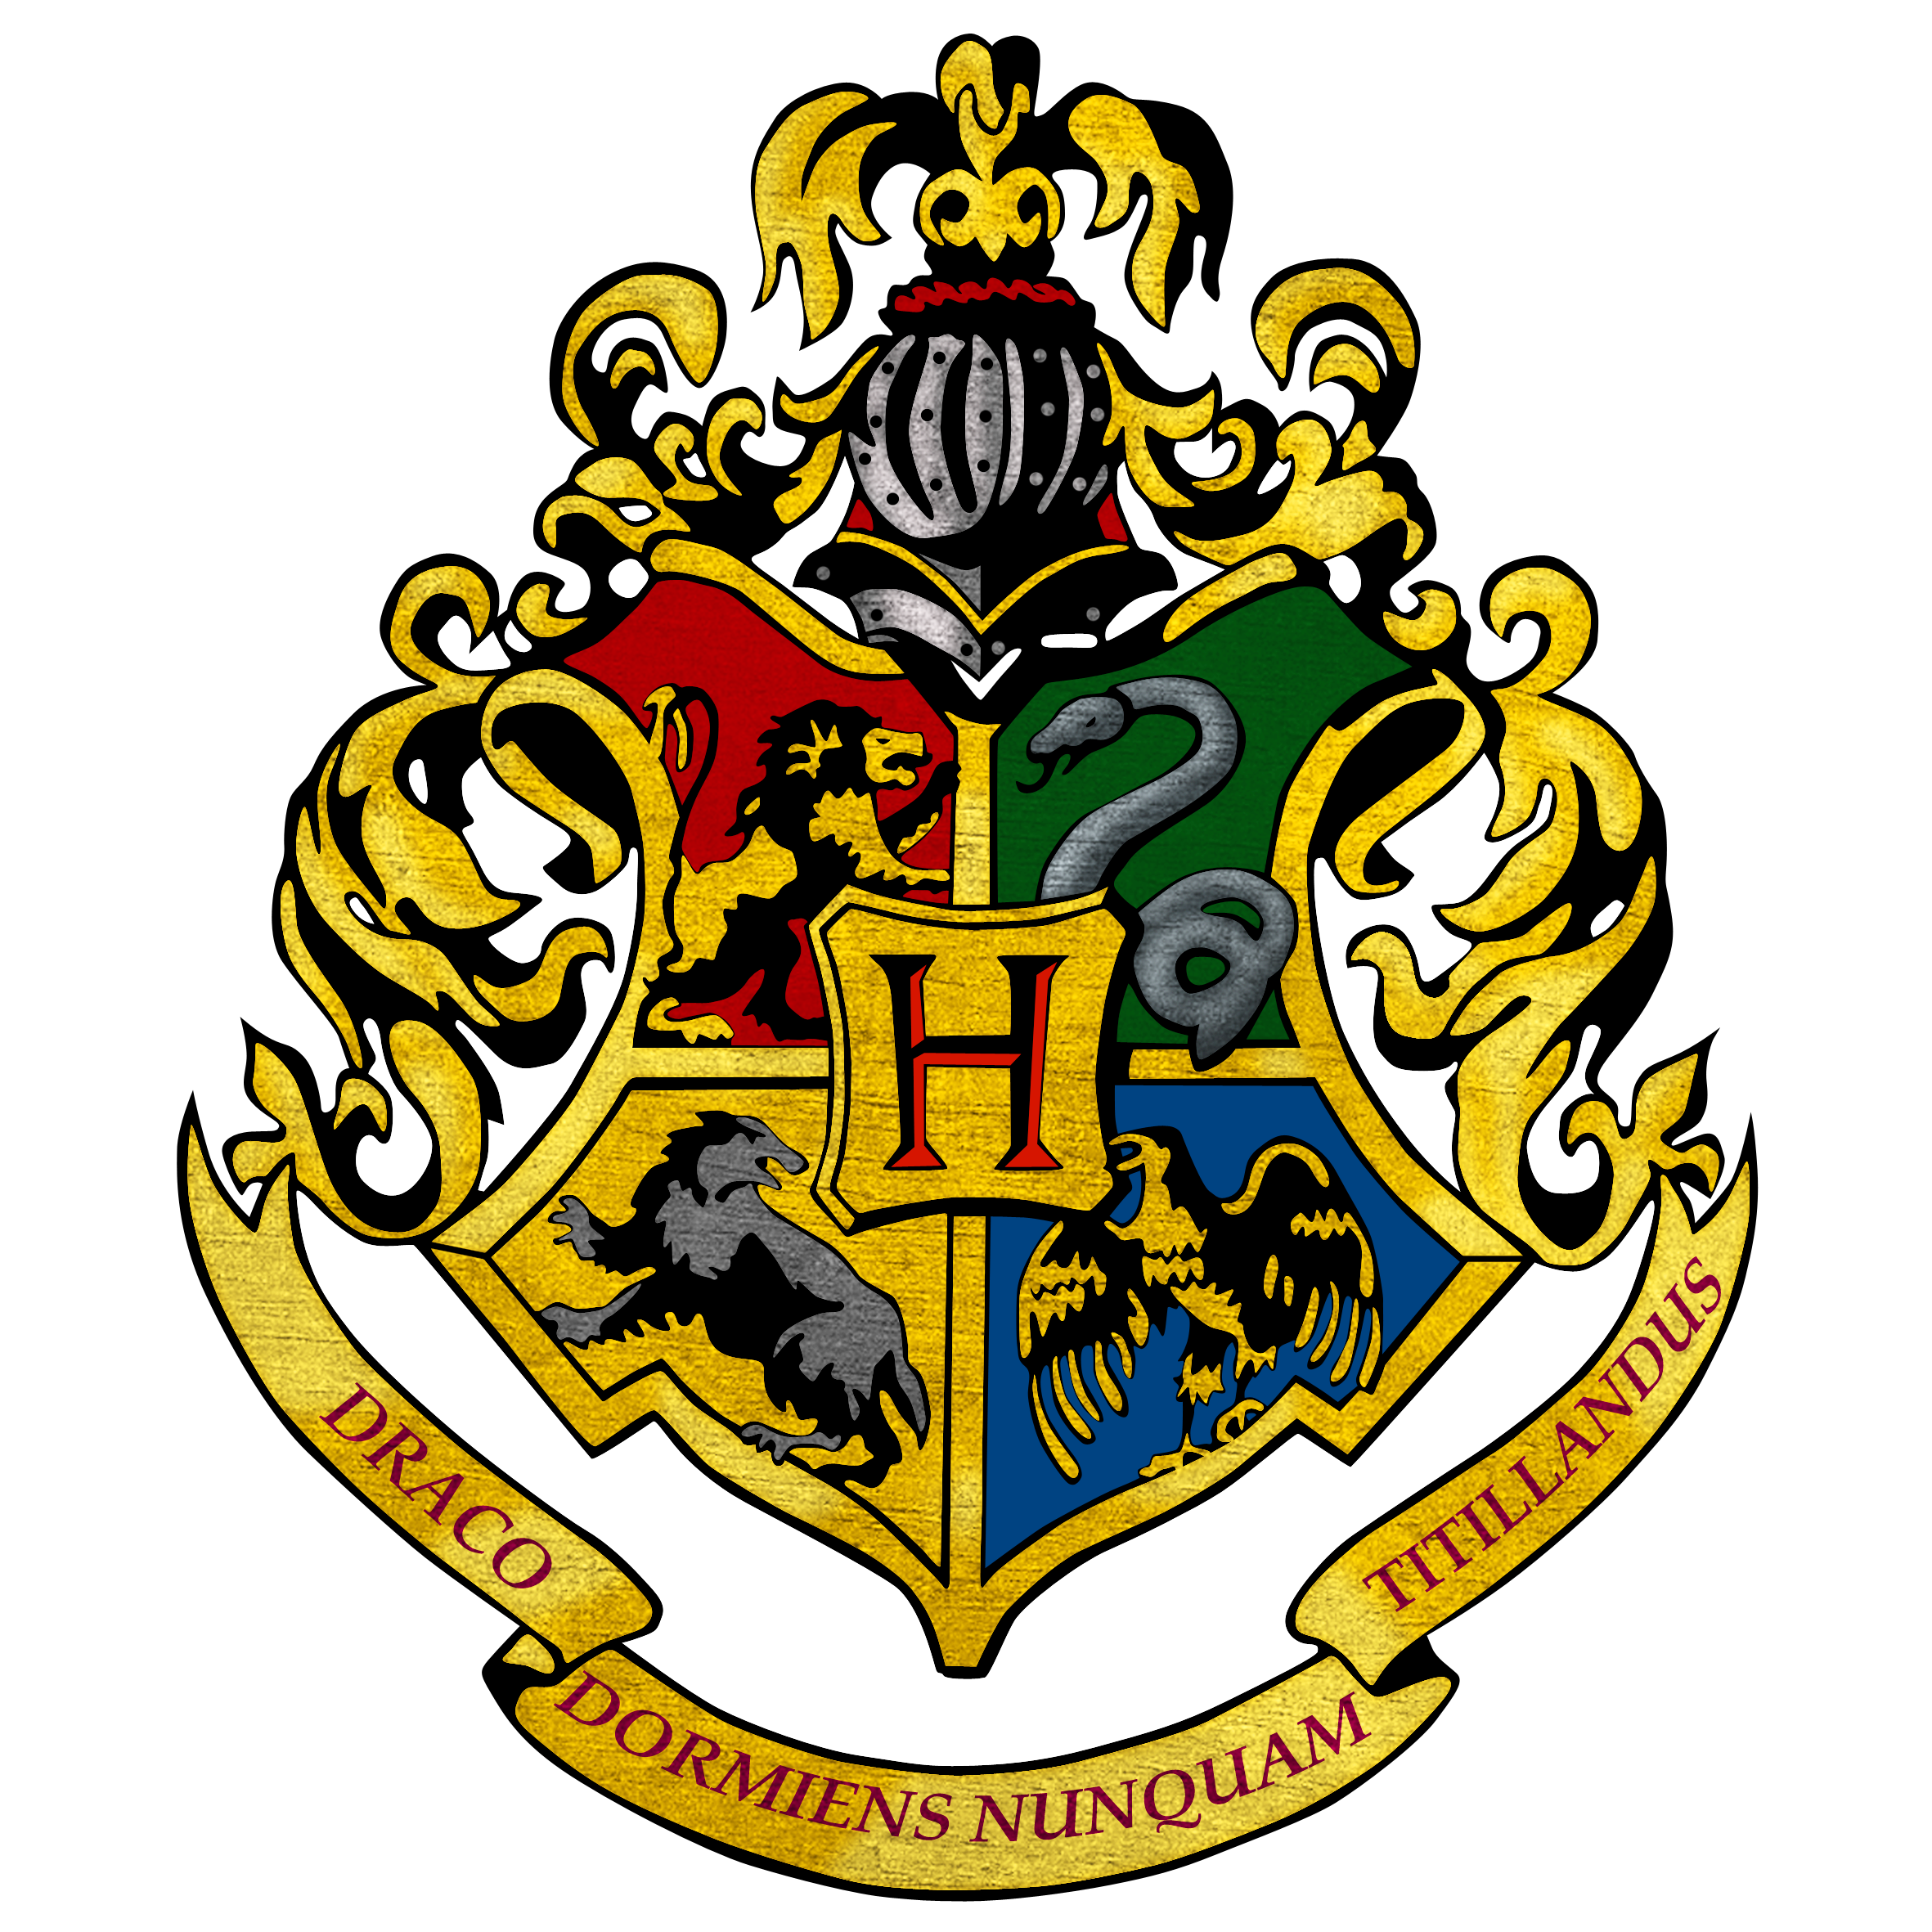 hogwarts emblem printable - Google Search | harry potter party ...